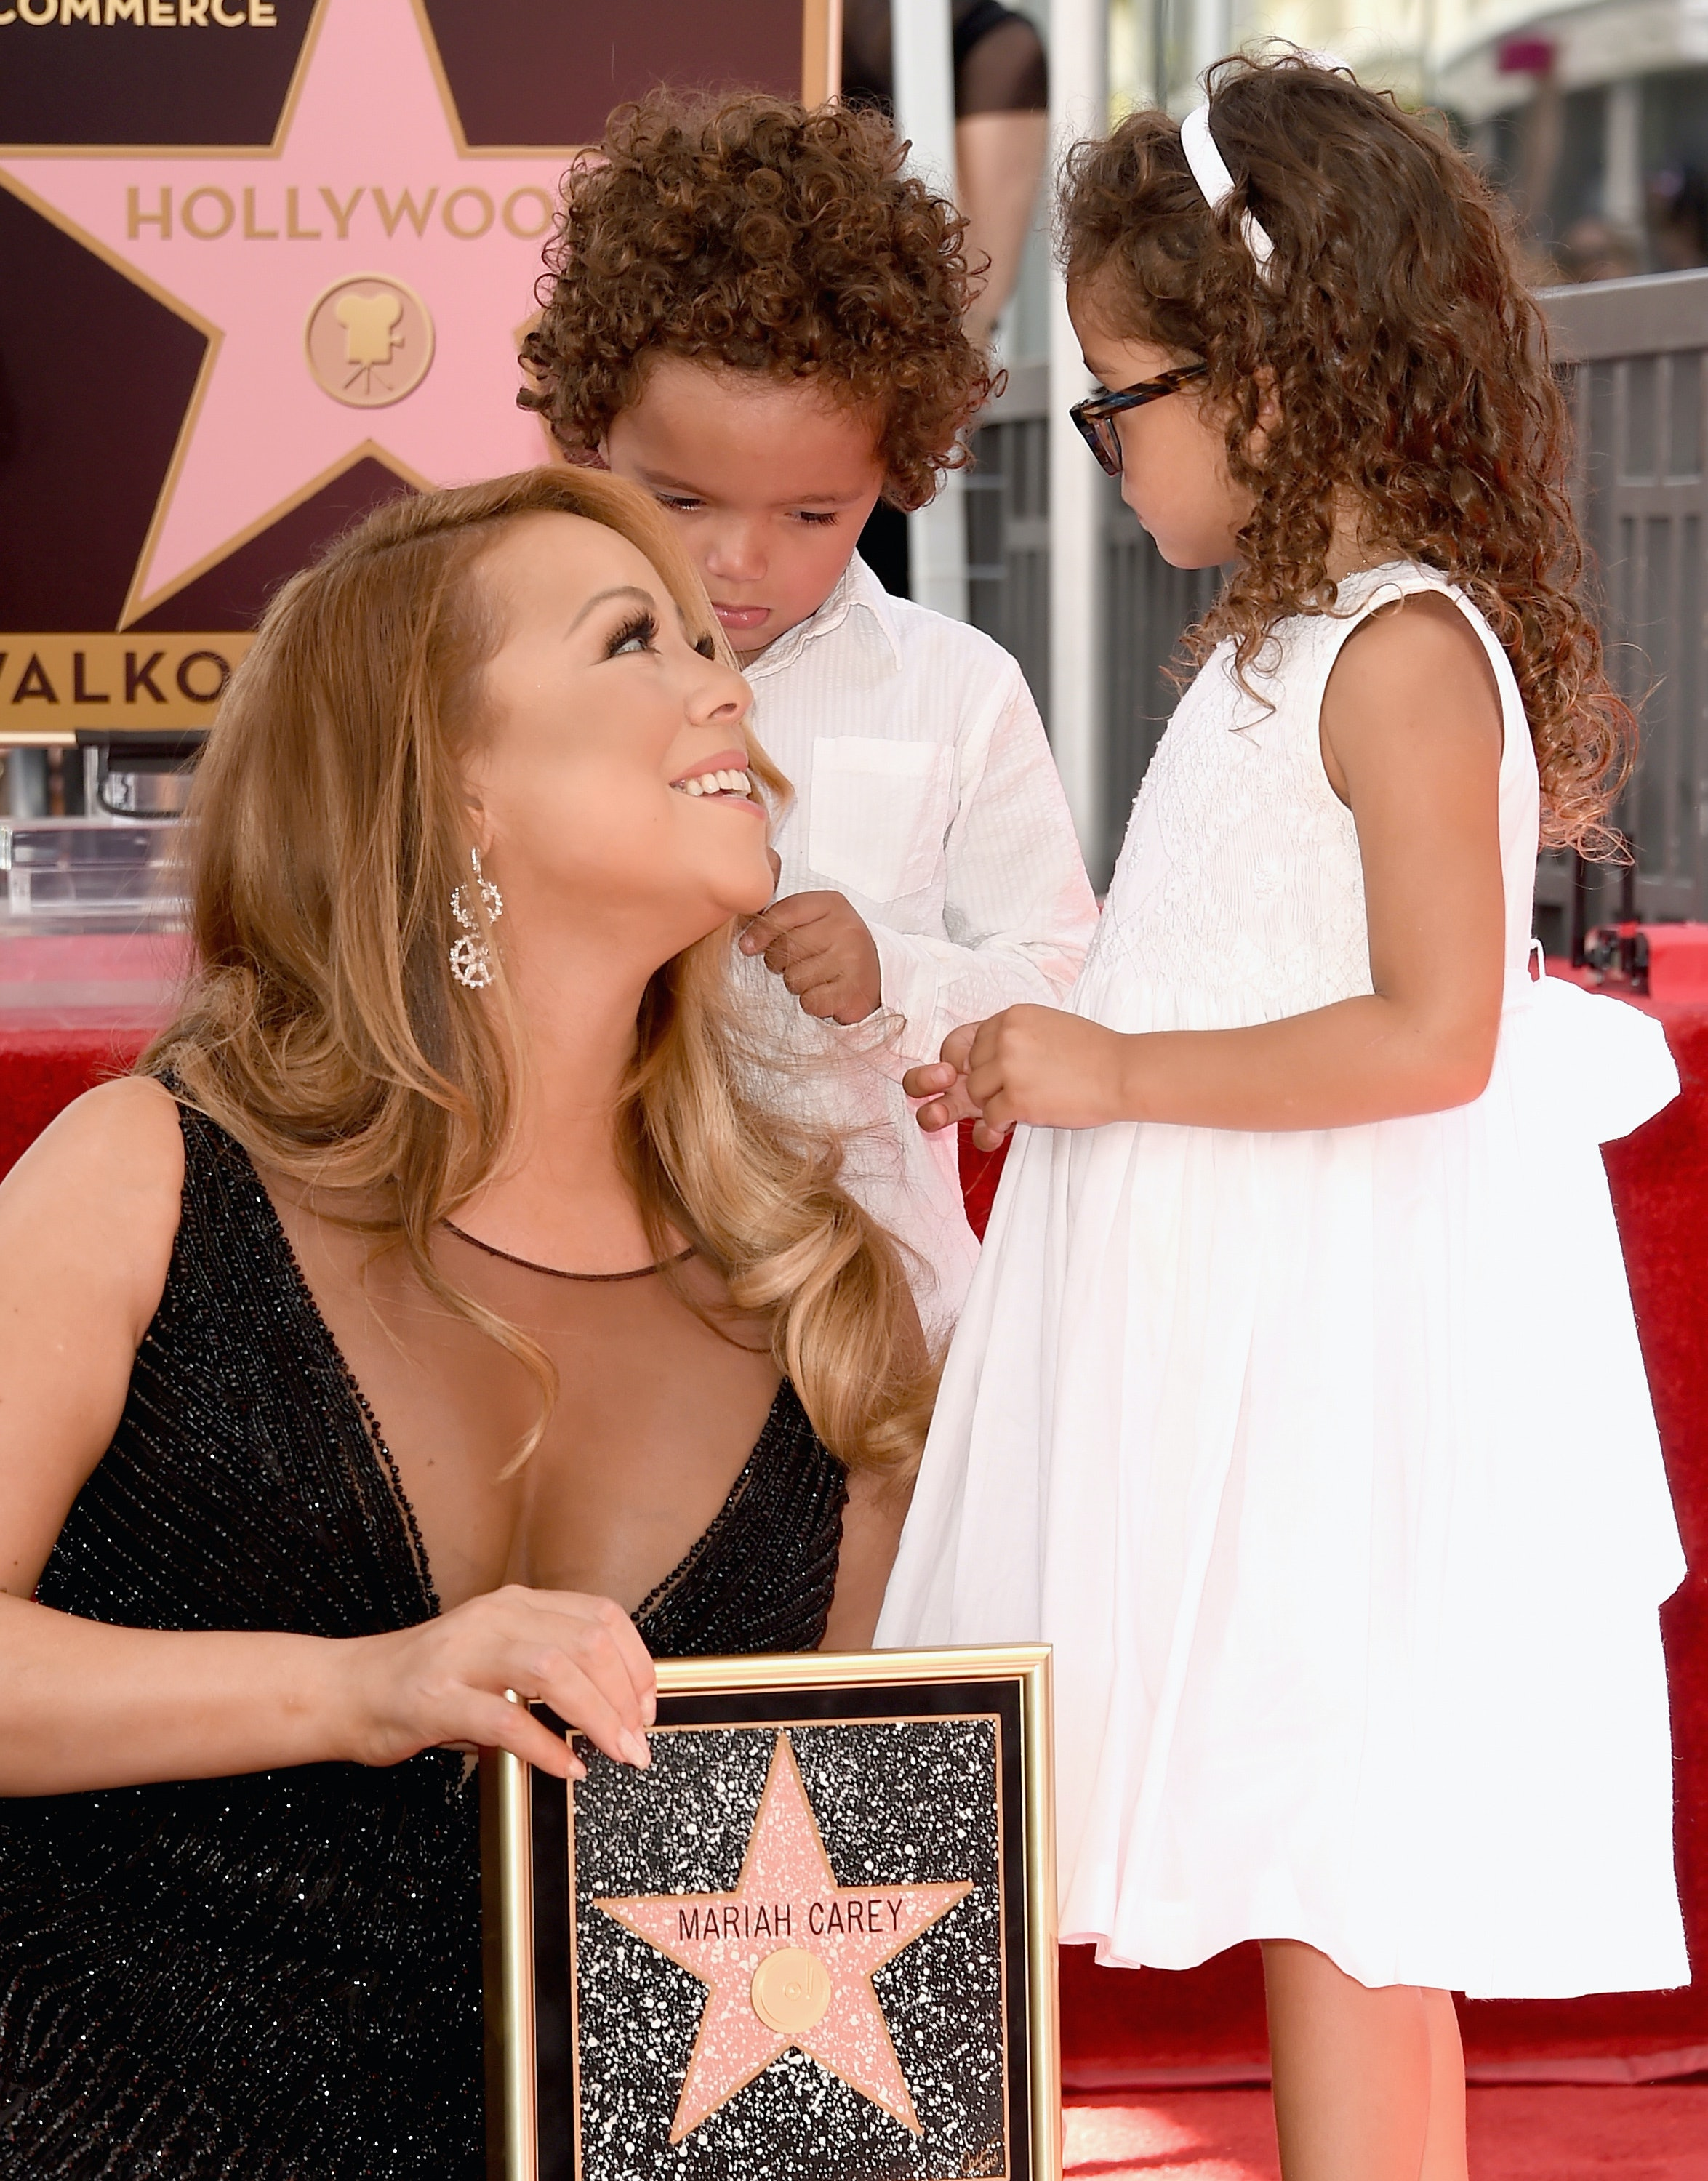 Mariah Carey S Photo Of Her Son Shows That They Look Just Like Twins Too